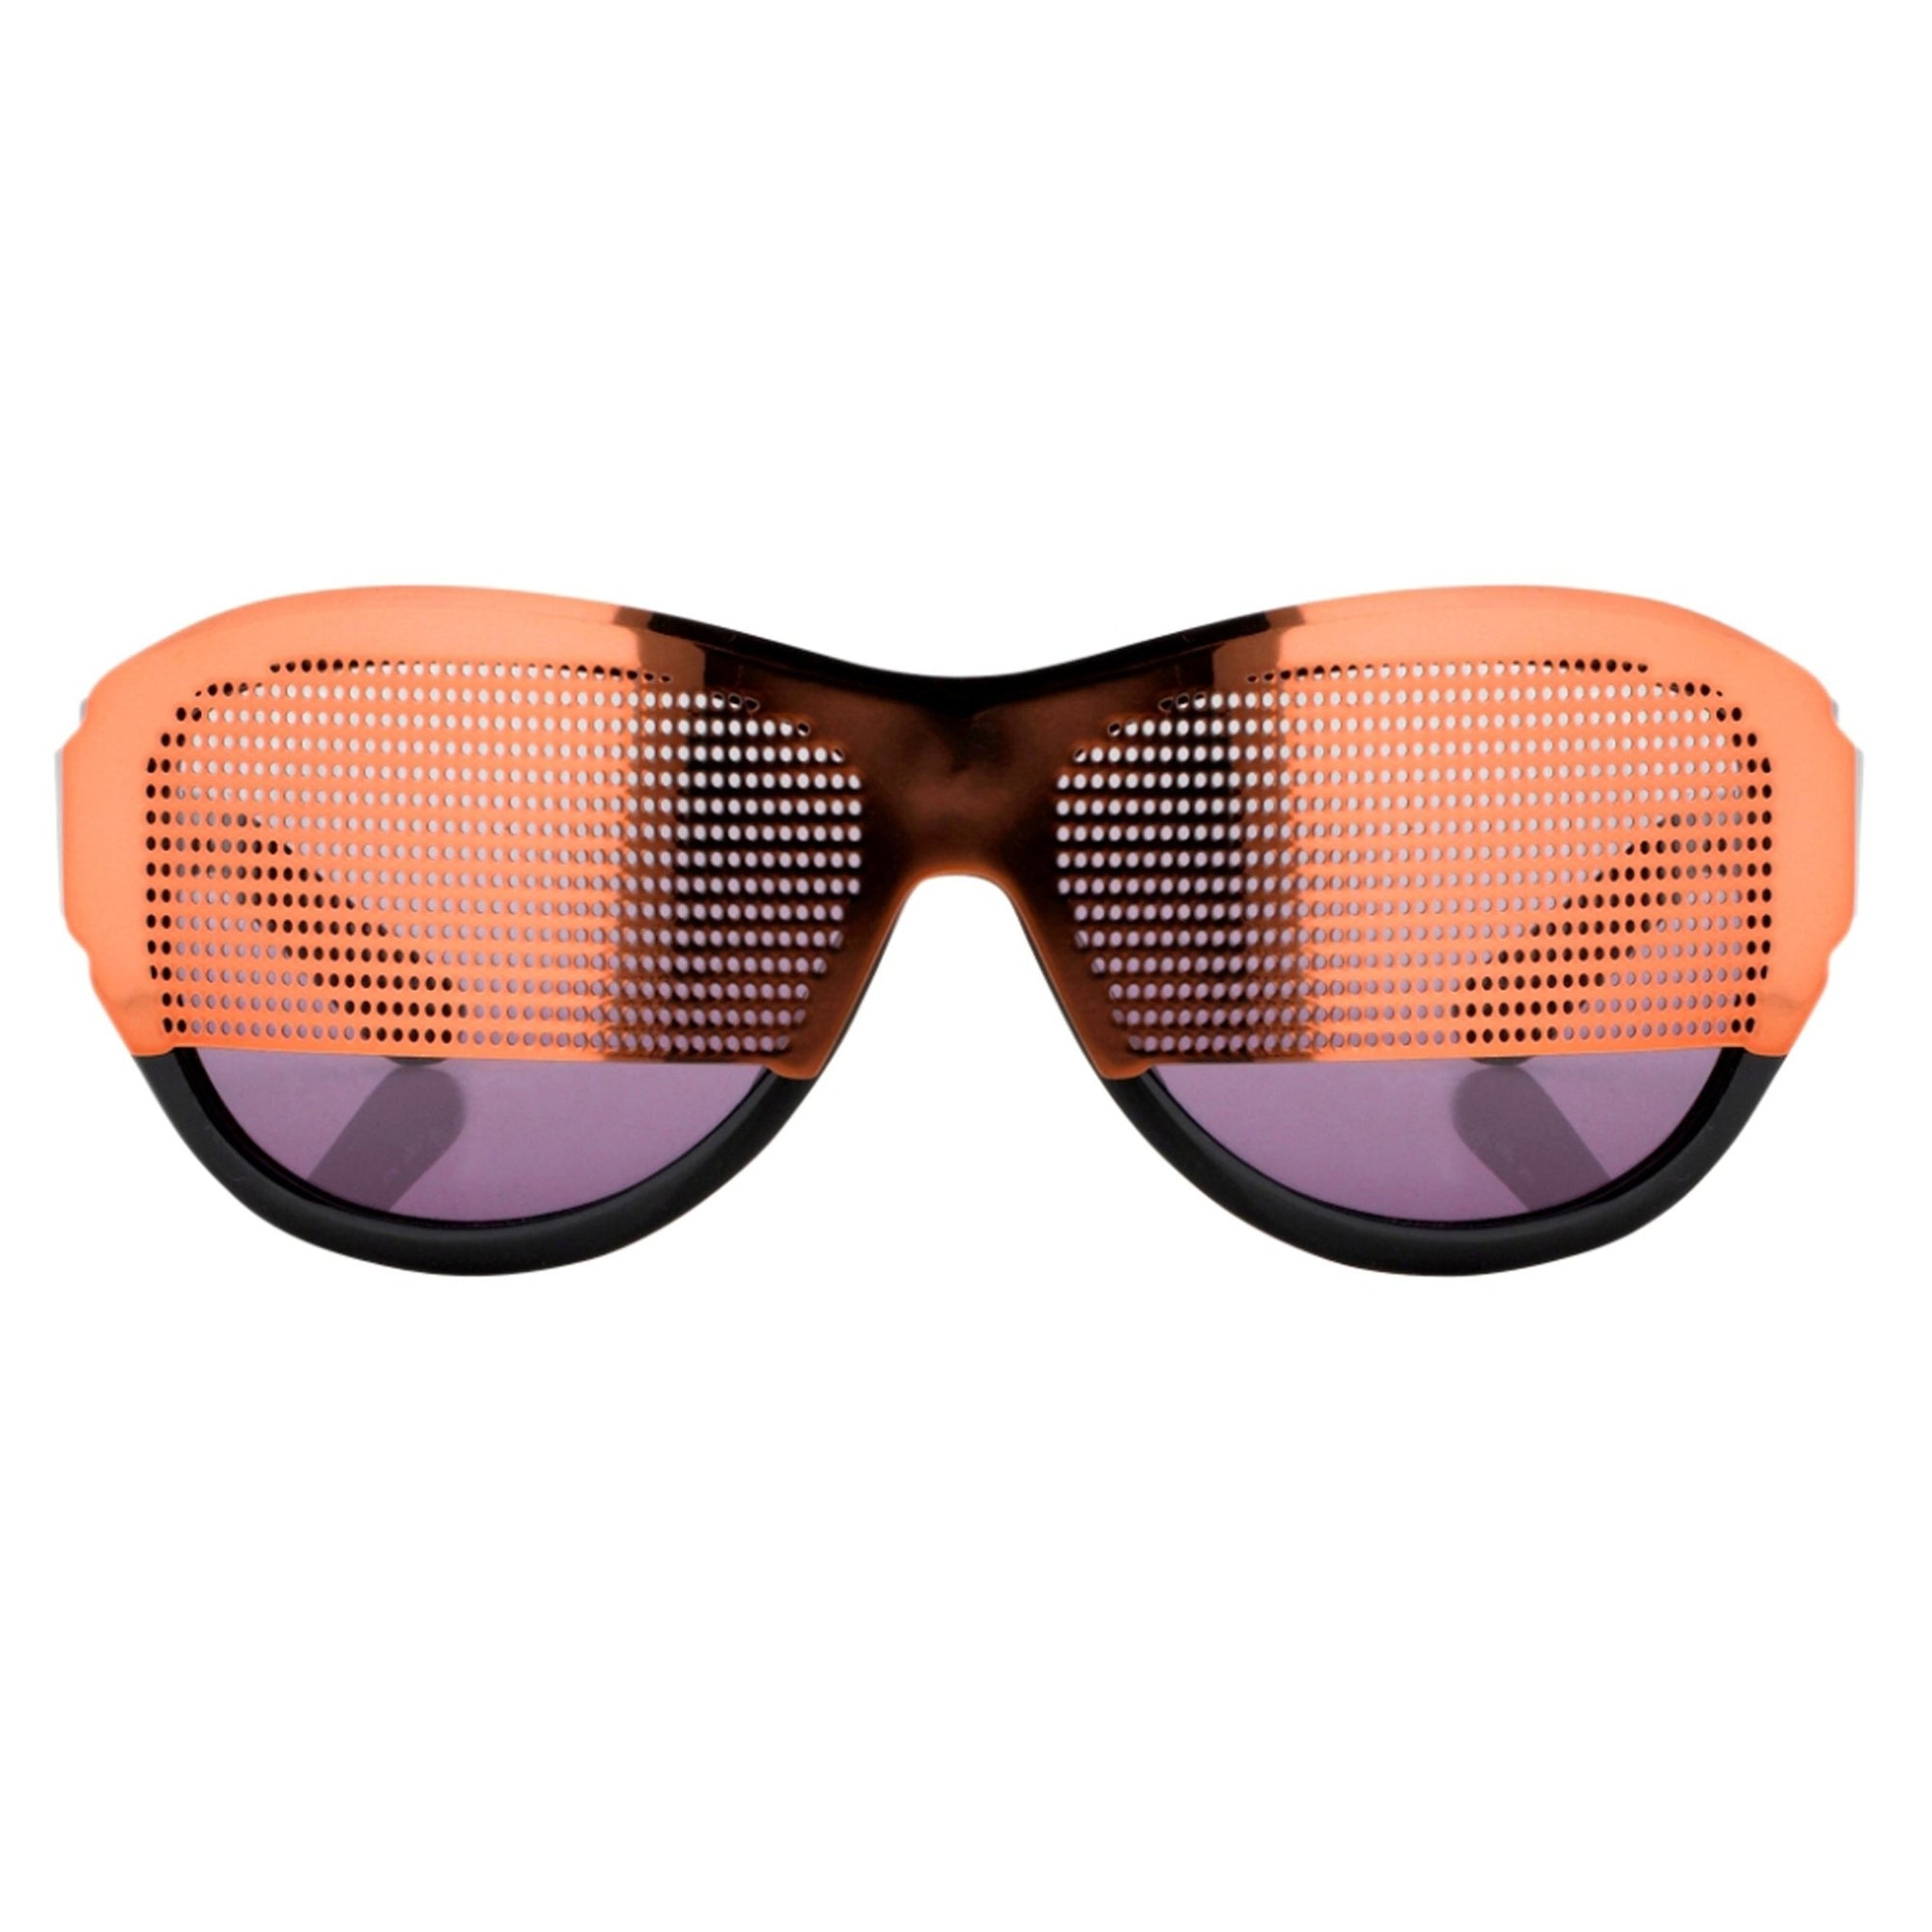 Todd Lynn Sunglasses Special Frame Brown/Black and Purple Lenses - TL2C4SUN - Watches & Crystals